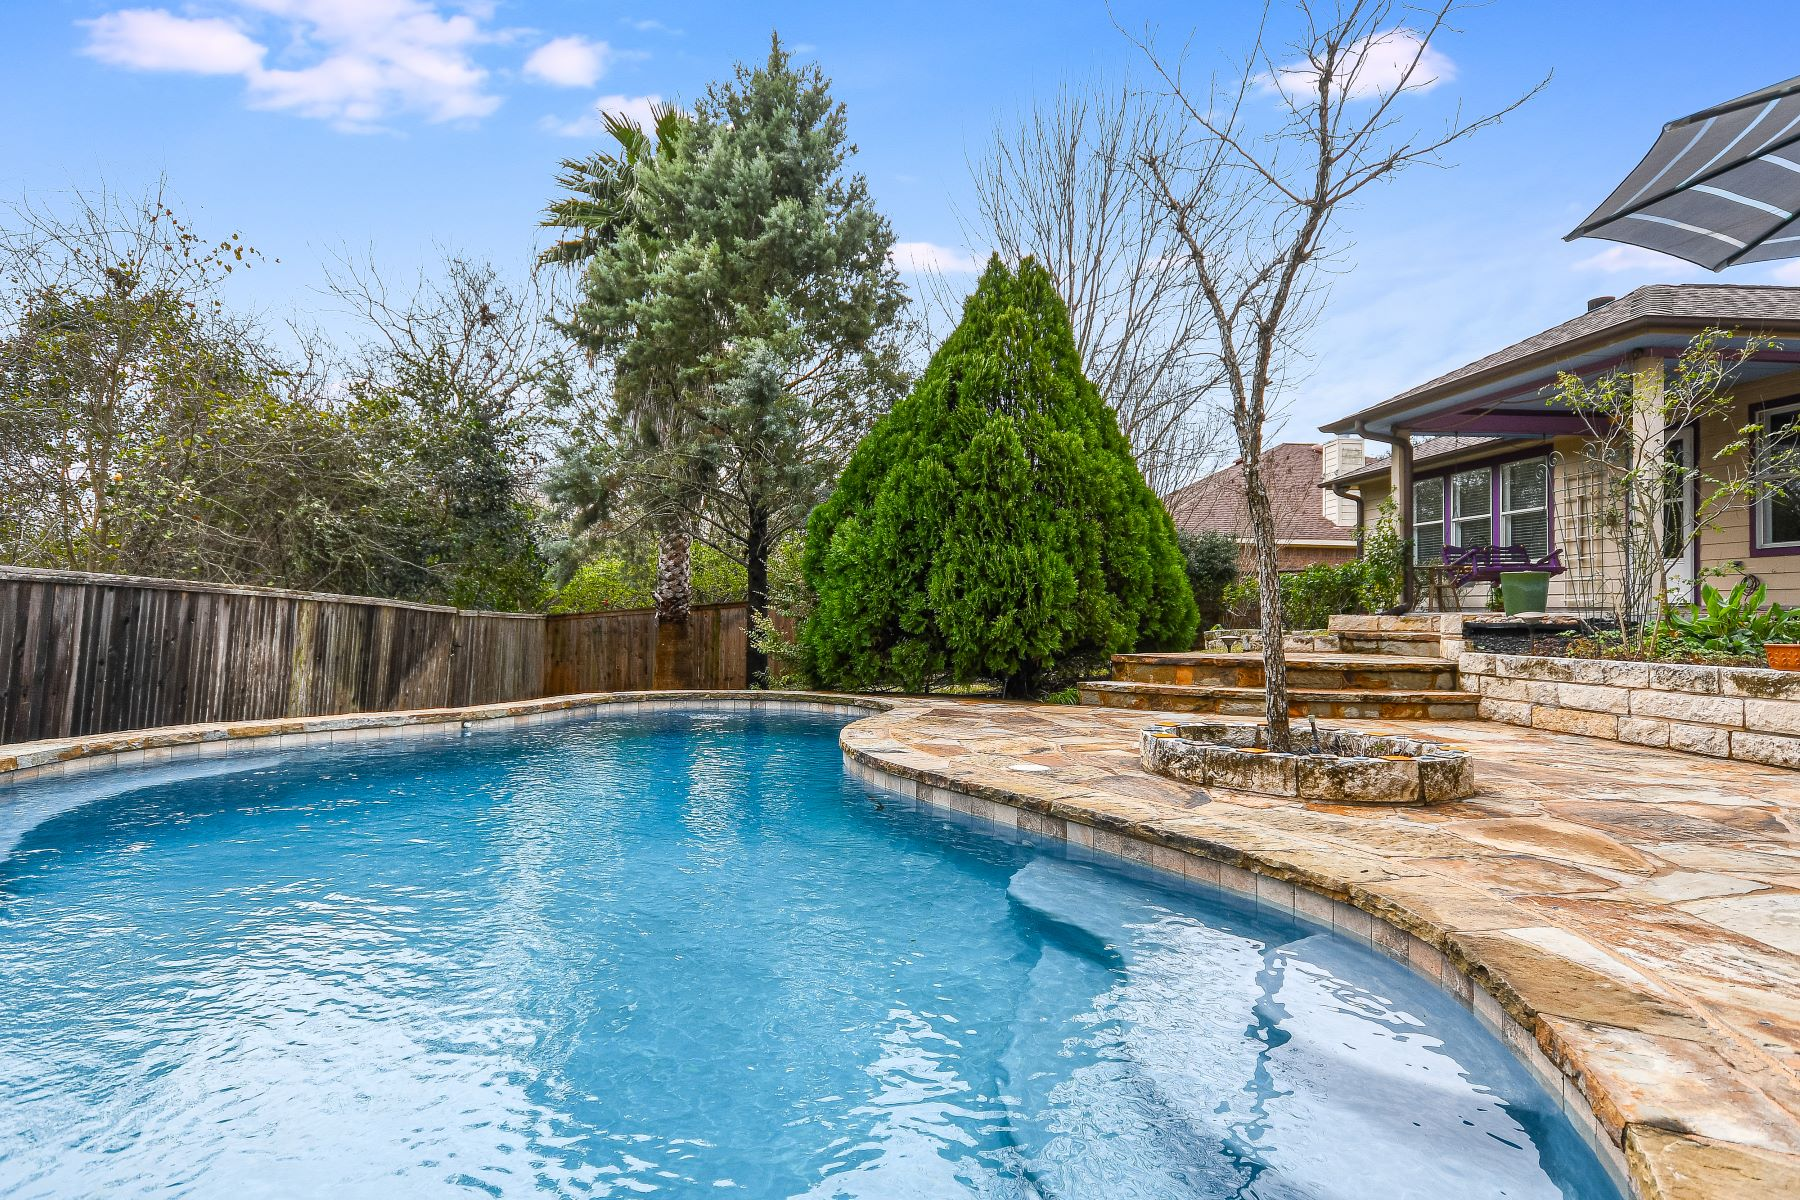 Single Family Homes for Active at 405 Plumbago Drive, Pflugerville, TX 78660 405 Plumbago Drive Pflugerville, Texas 78660 United States